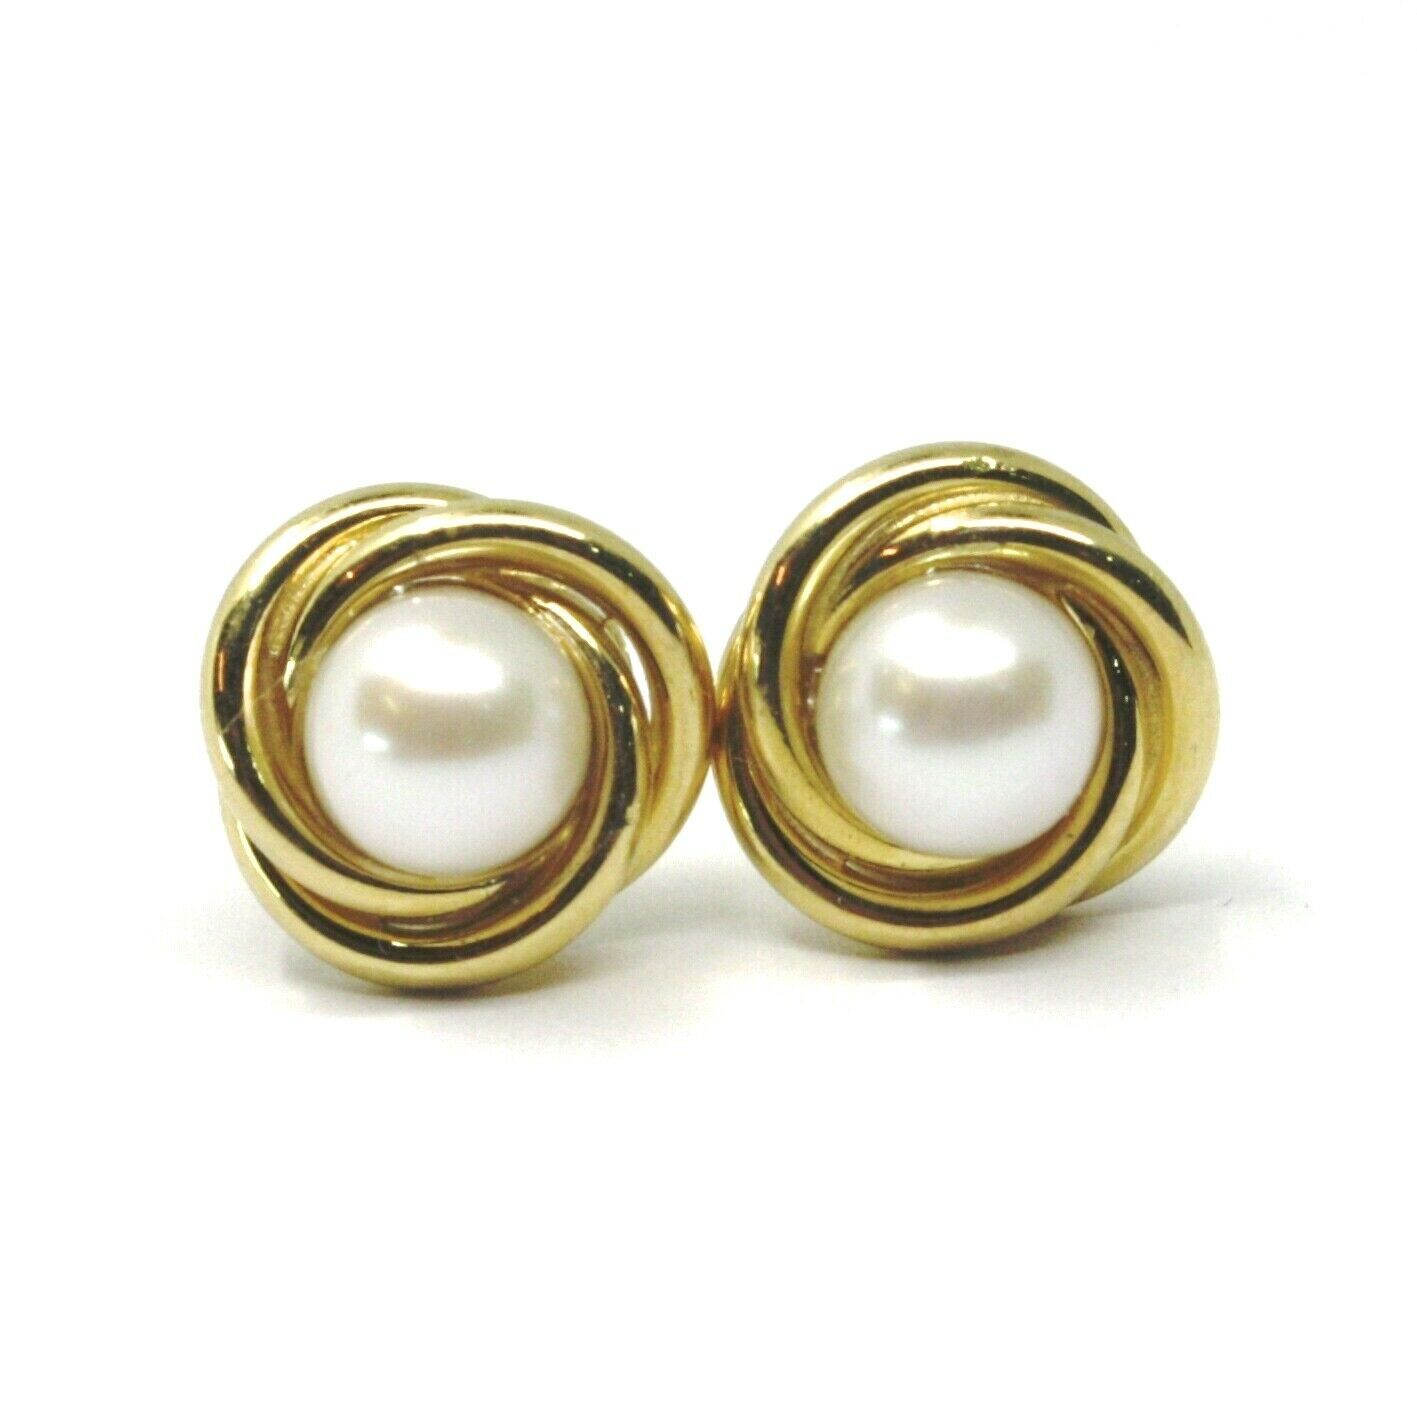 18K YELLOW GOLD PEARL BUTTON EARRINGS, 11 MM, 0.43 INCHES, FLOWER BRAIDED SPIRAL